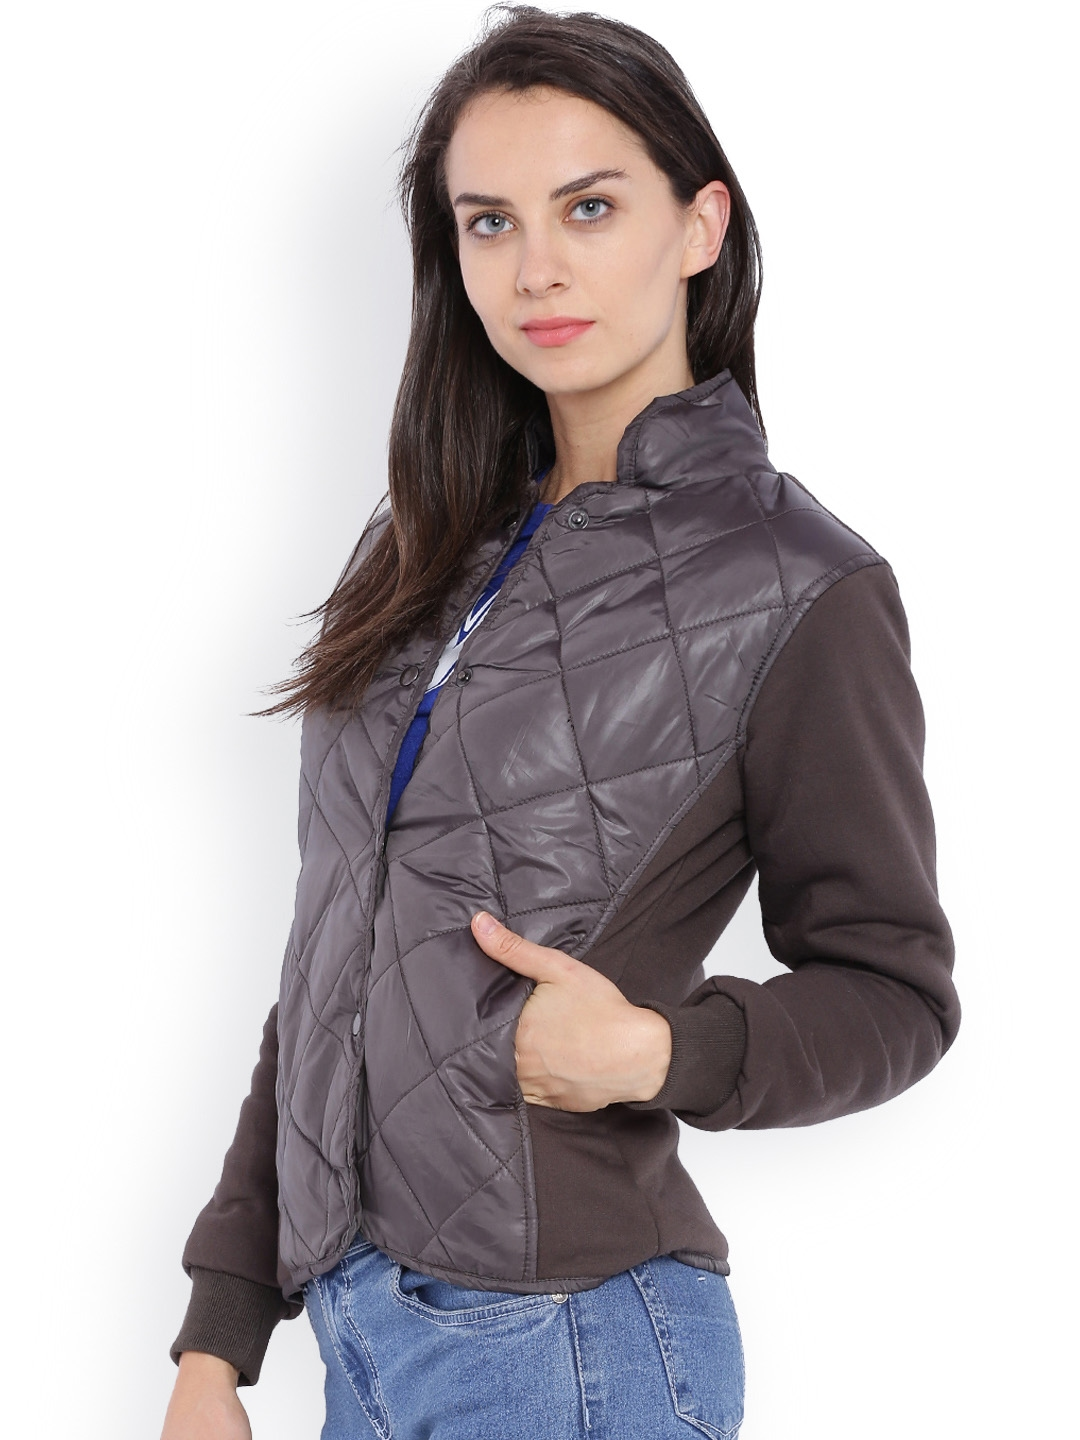 f7054bfde Buy Campus Sutra Grey Quilted Hooded Jacket - Jackets for Women ...